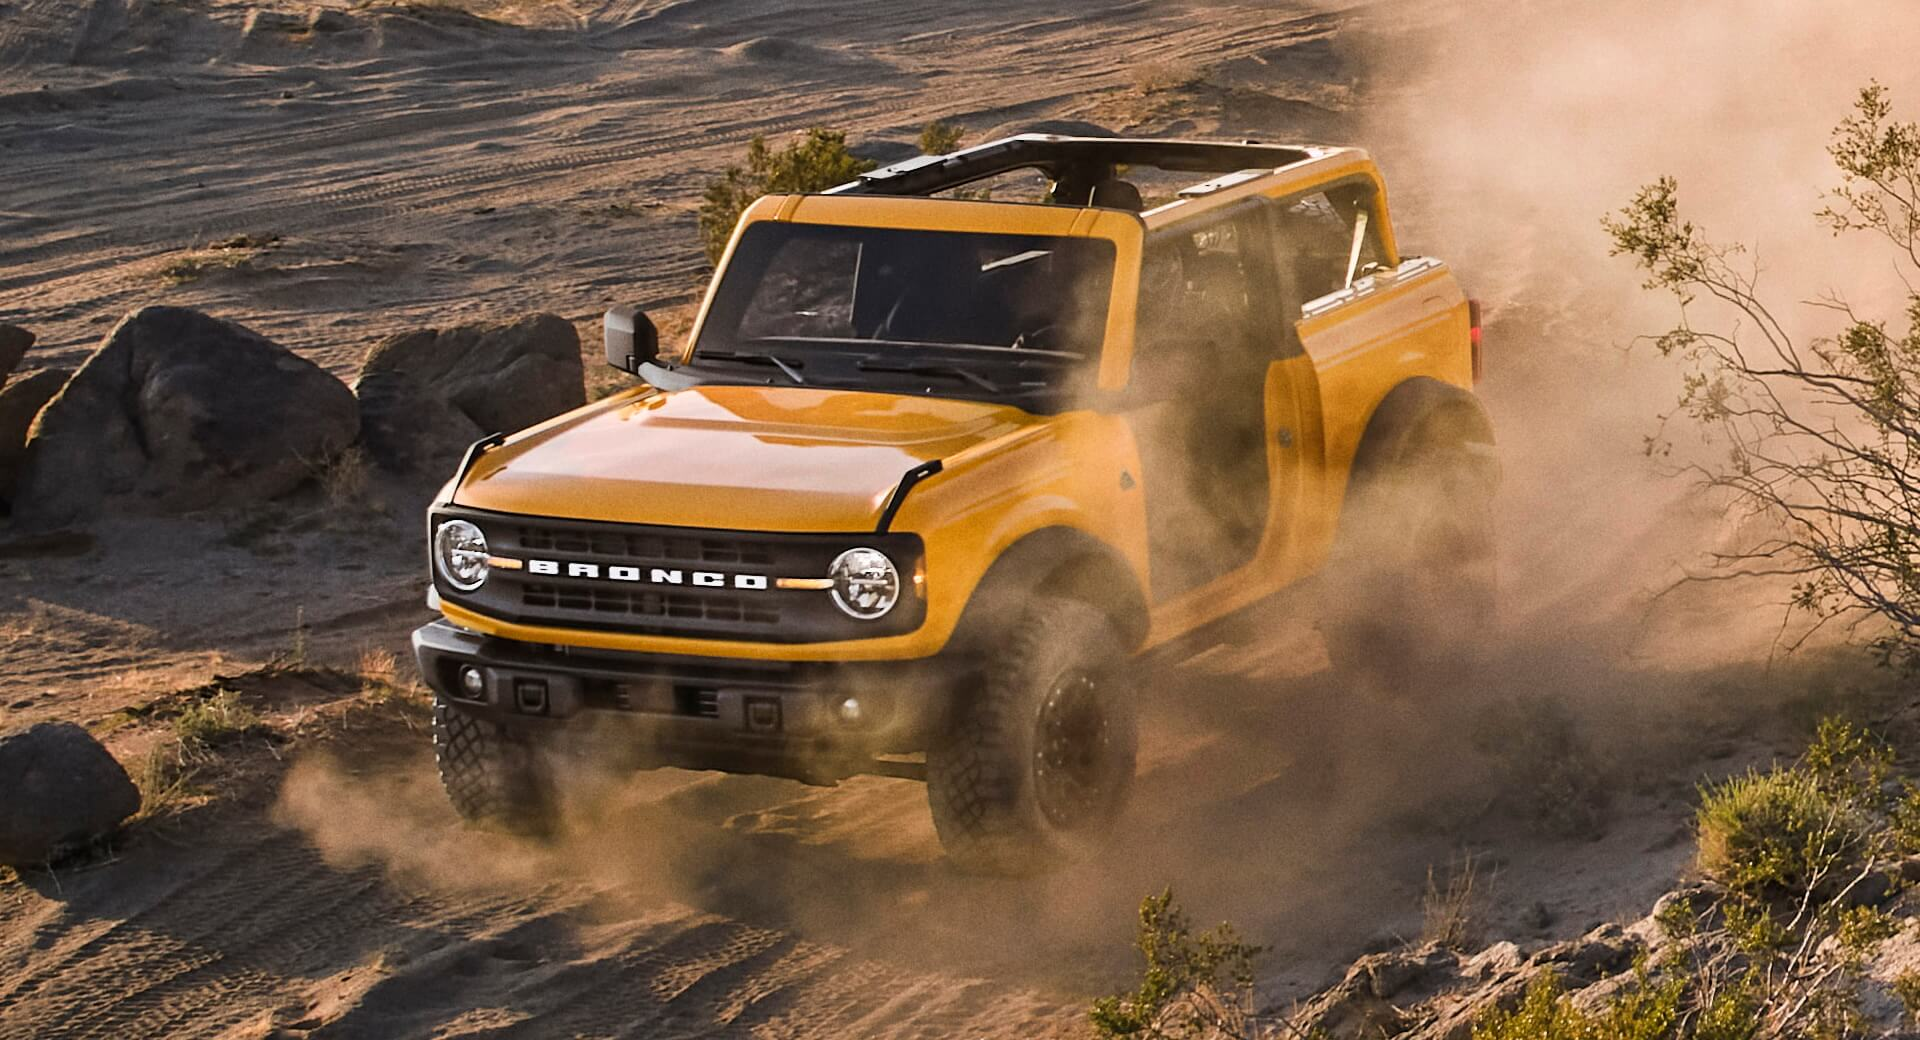 2021 Ford Bronco 02 1